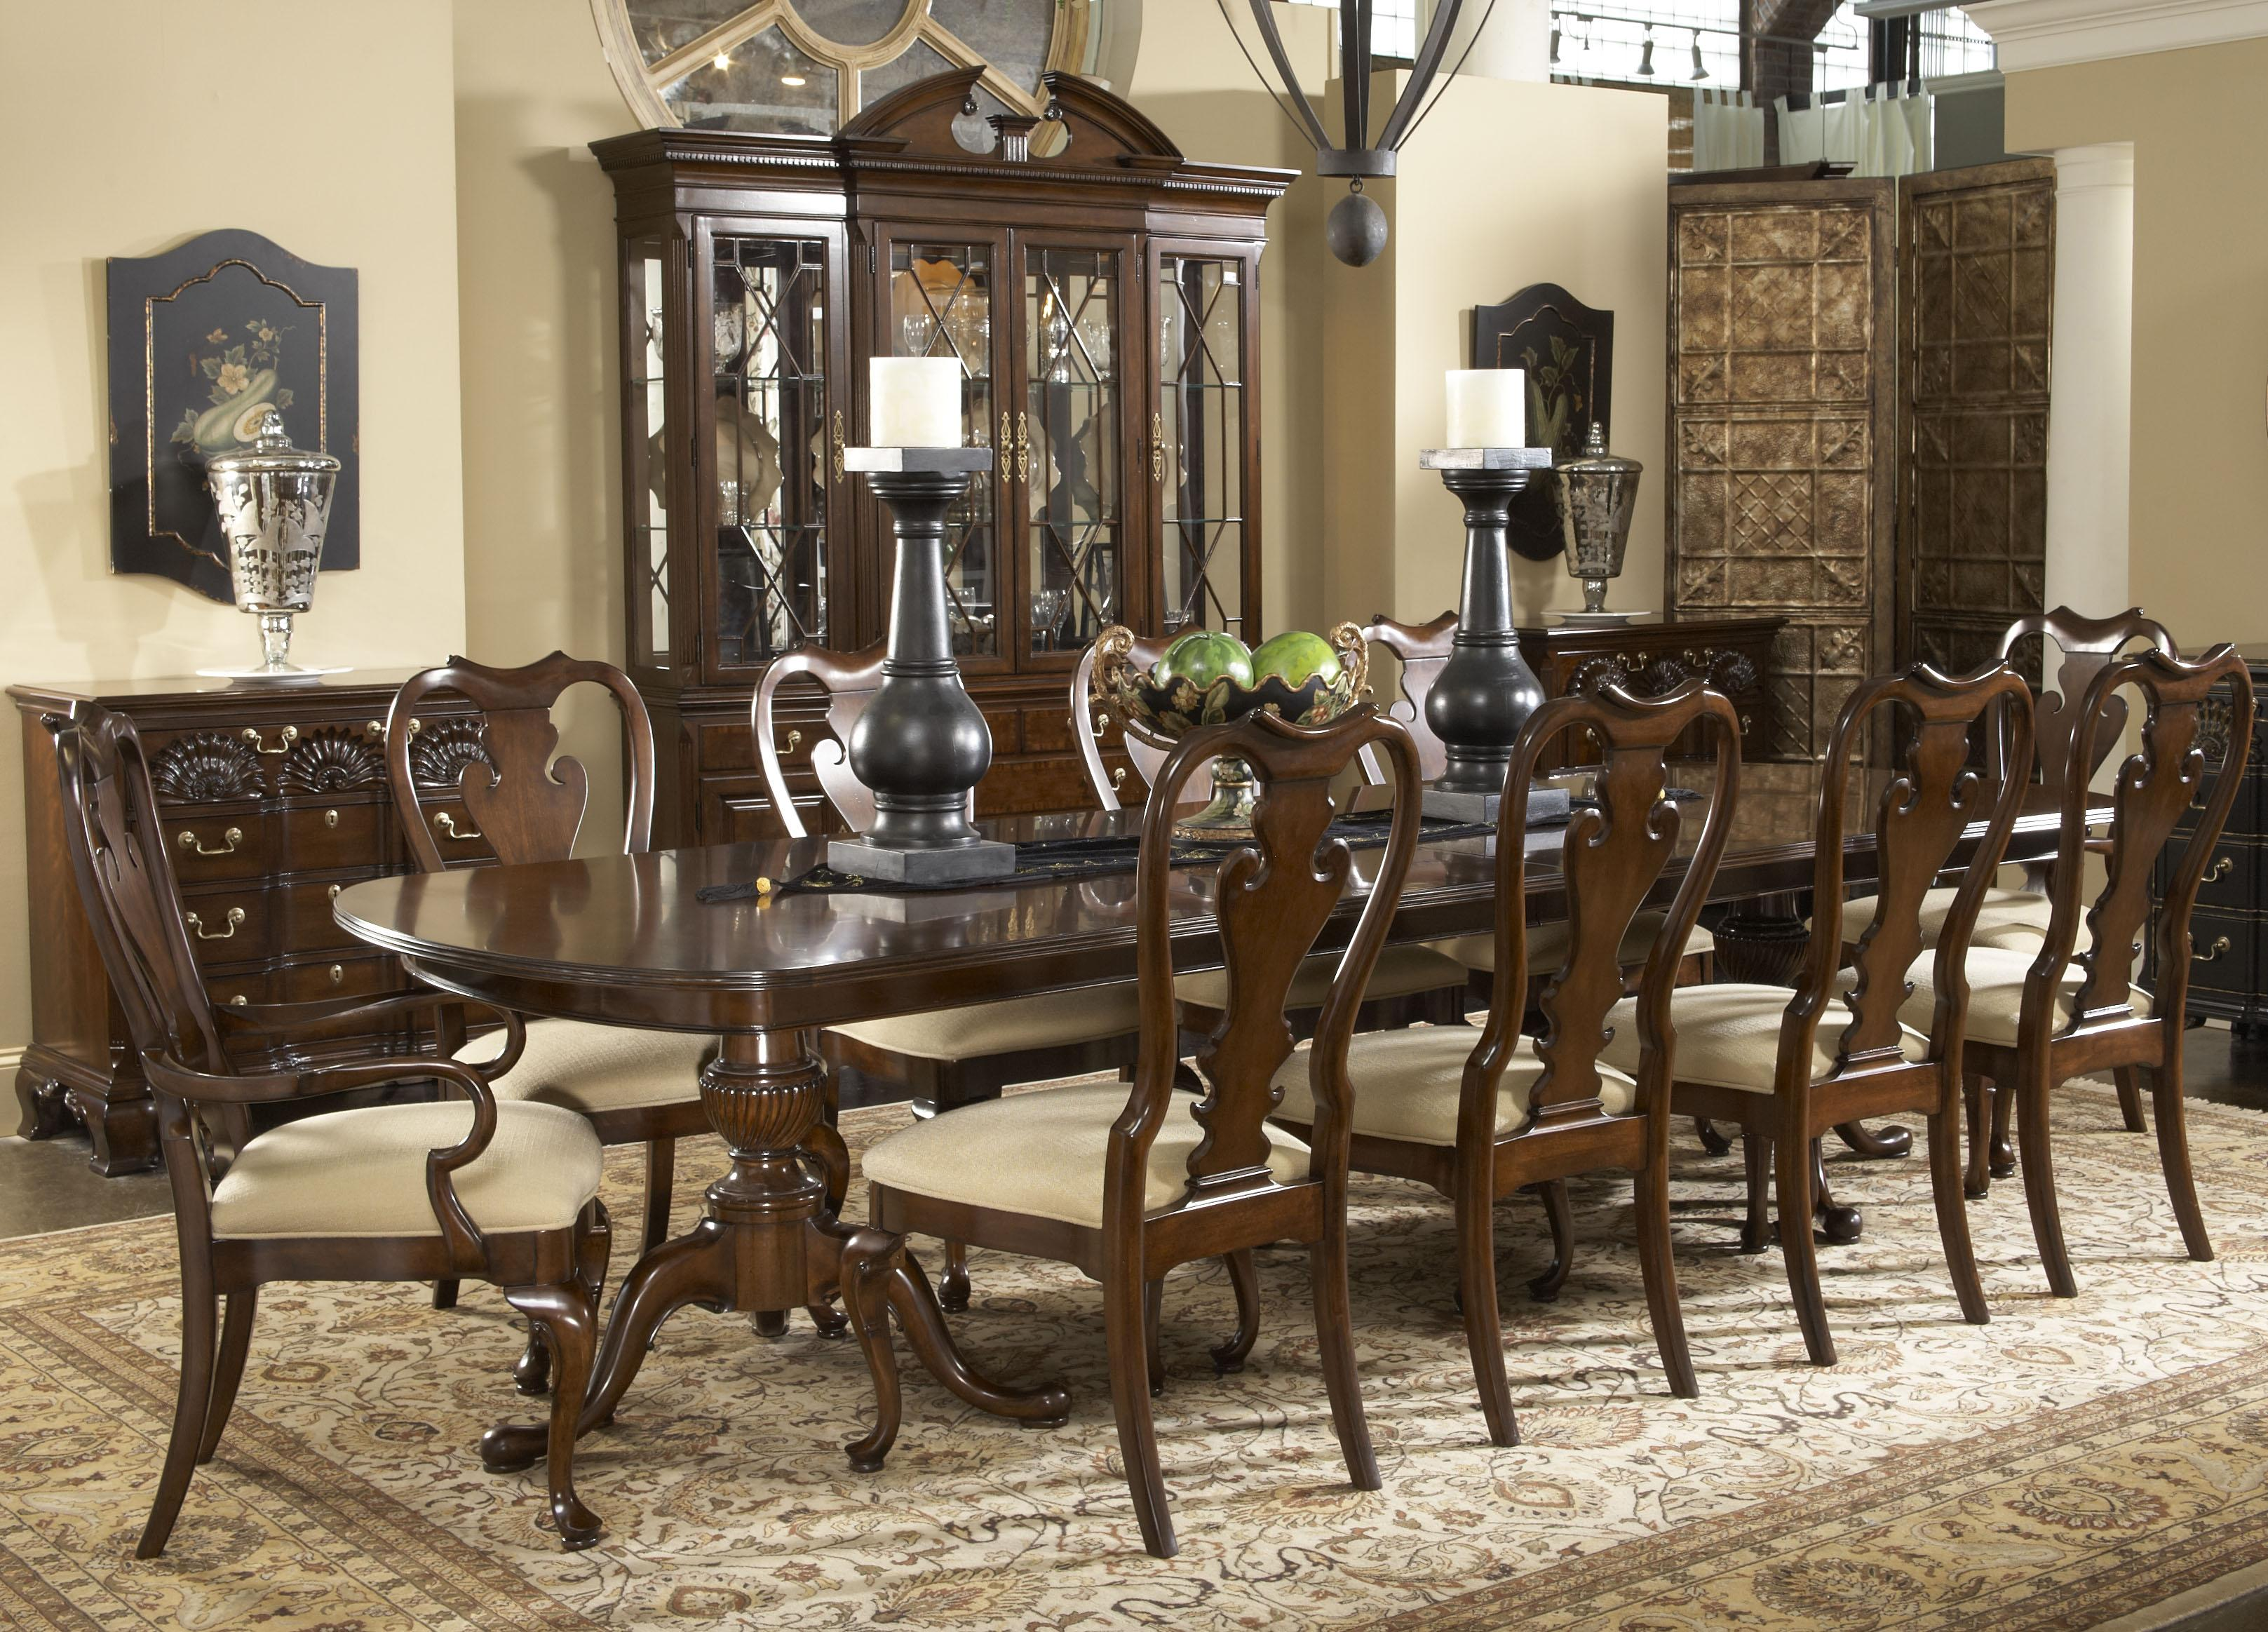 11 piece dining room set homesfeed. Black Bedroom Furniture Sets. Home Design Ideas